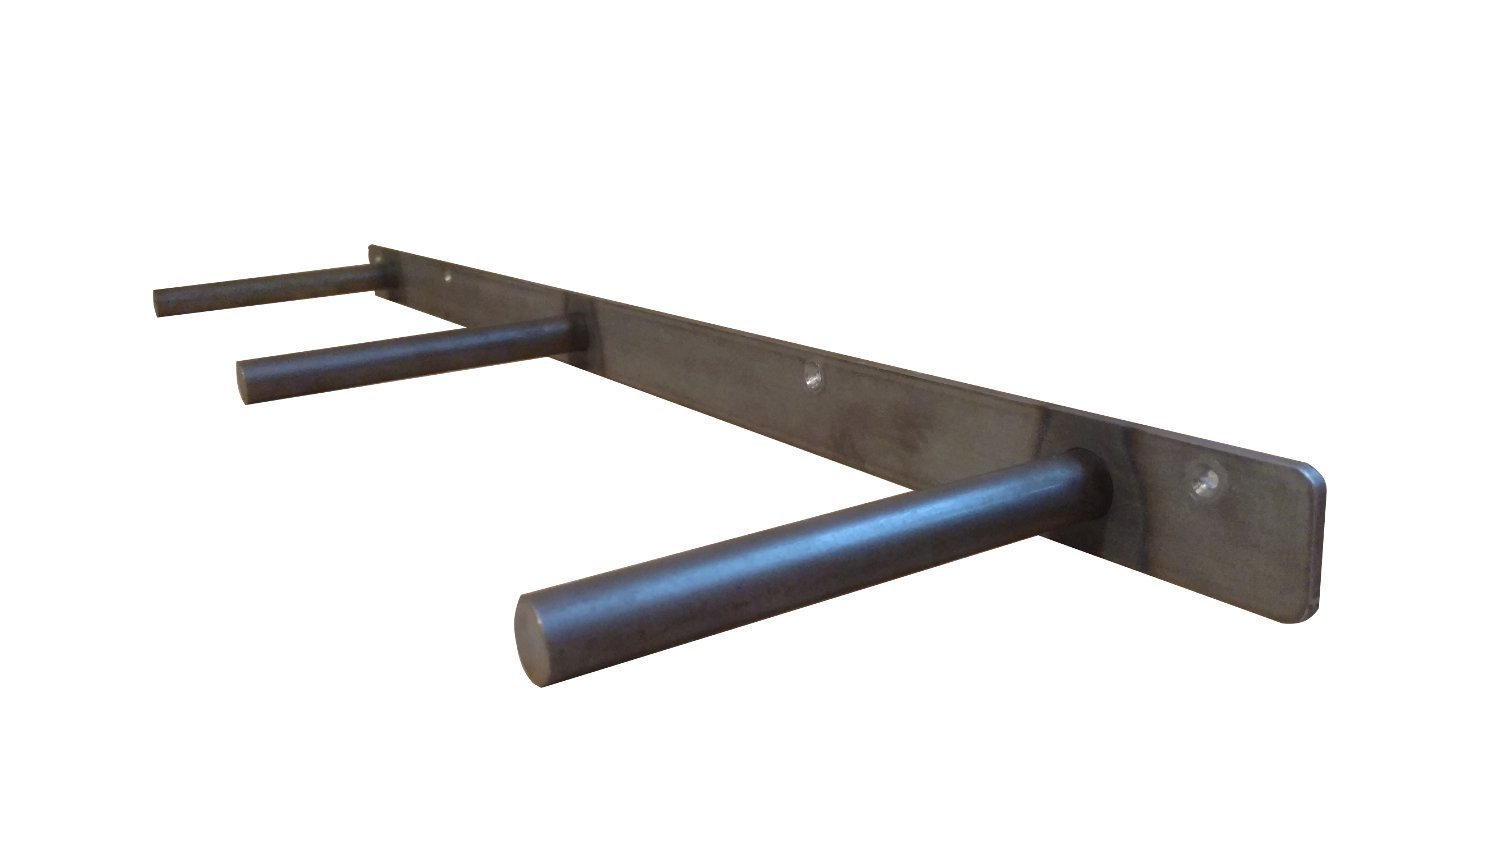 32'' Floating Shelf Heavy Duty Solid Steel Bracket- For 36'' + Shelves MADE IN THE USA! by Walnut Wood Works (Image #2)